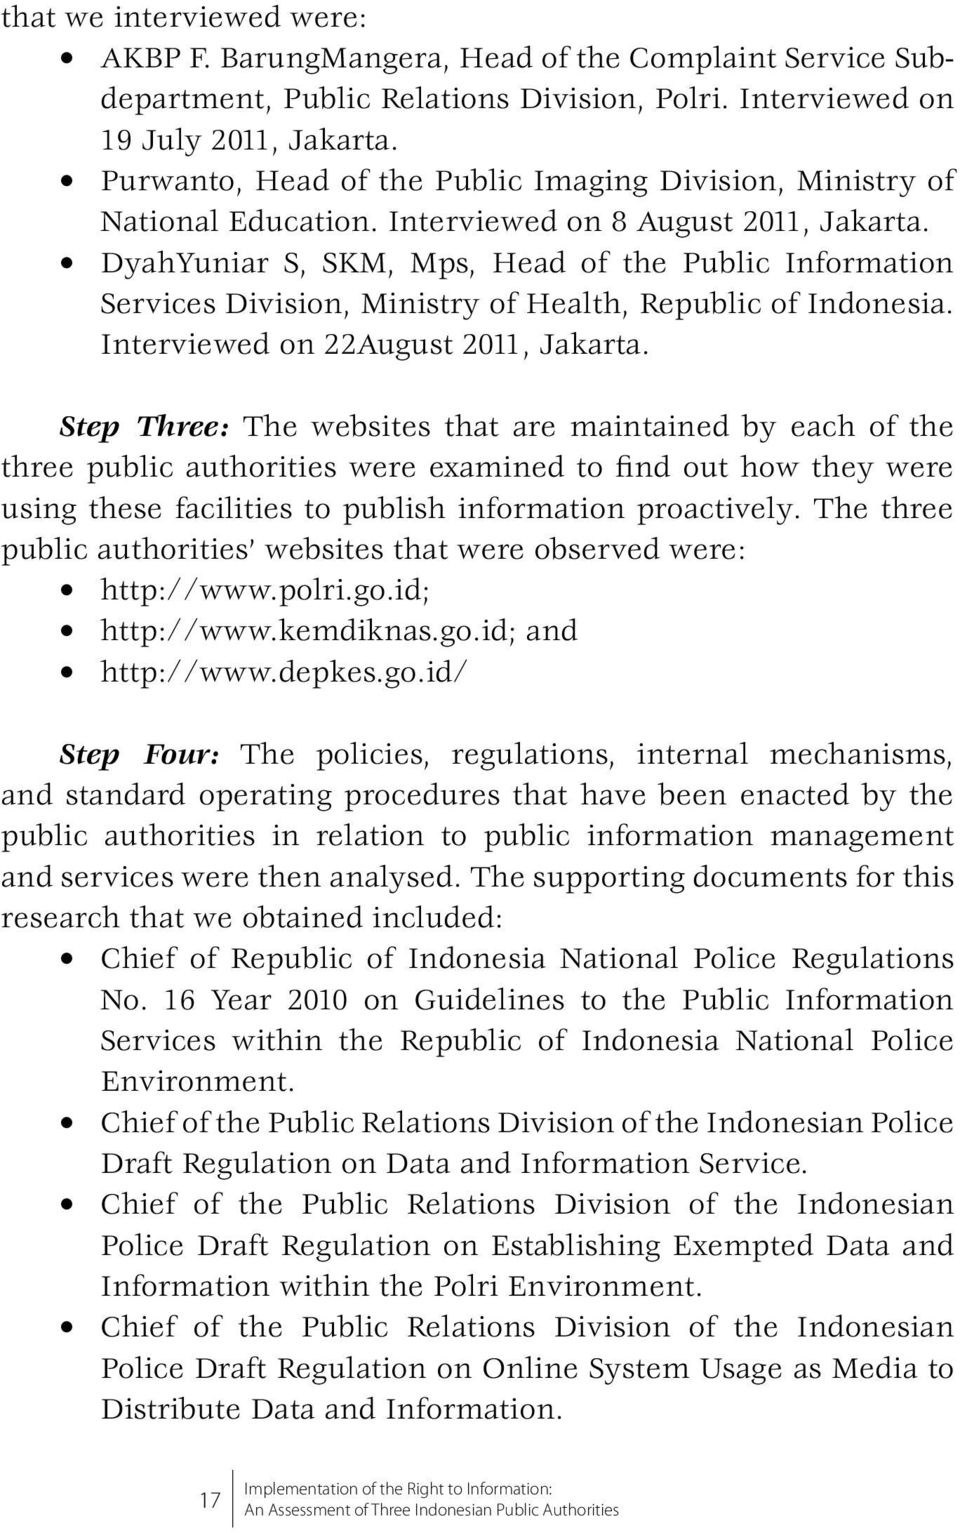 DyahYuniar S, SKM, Mps, Head of the Public Information Services Division, Ministry of Health, Republic of Indonesia. Interviewed on 22August 2011, Jakarta.